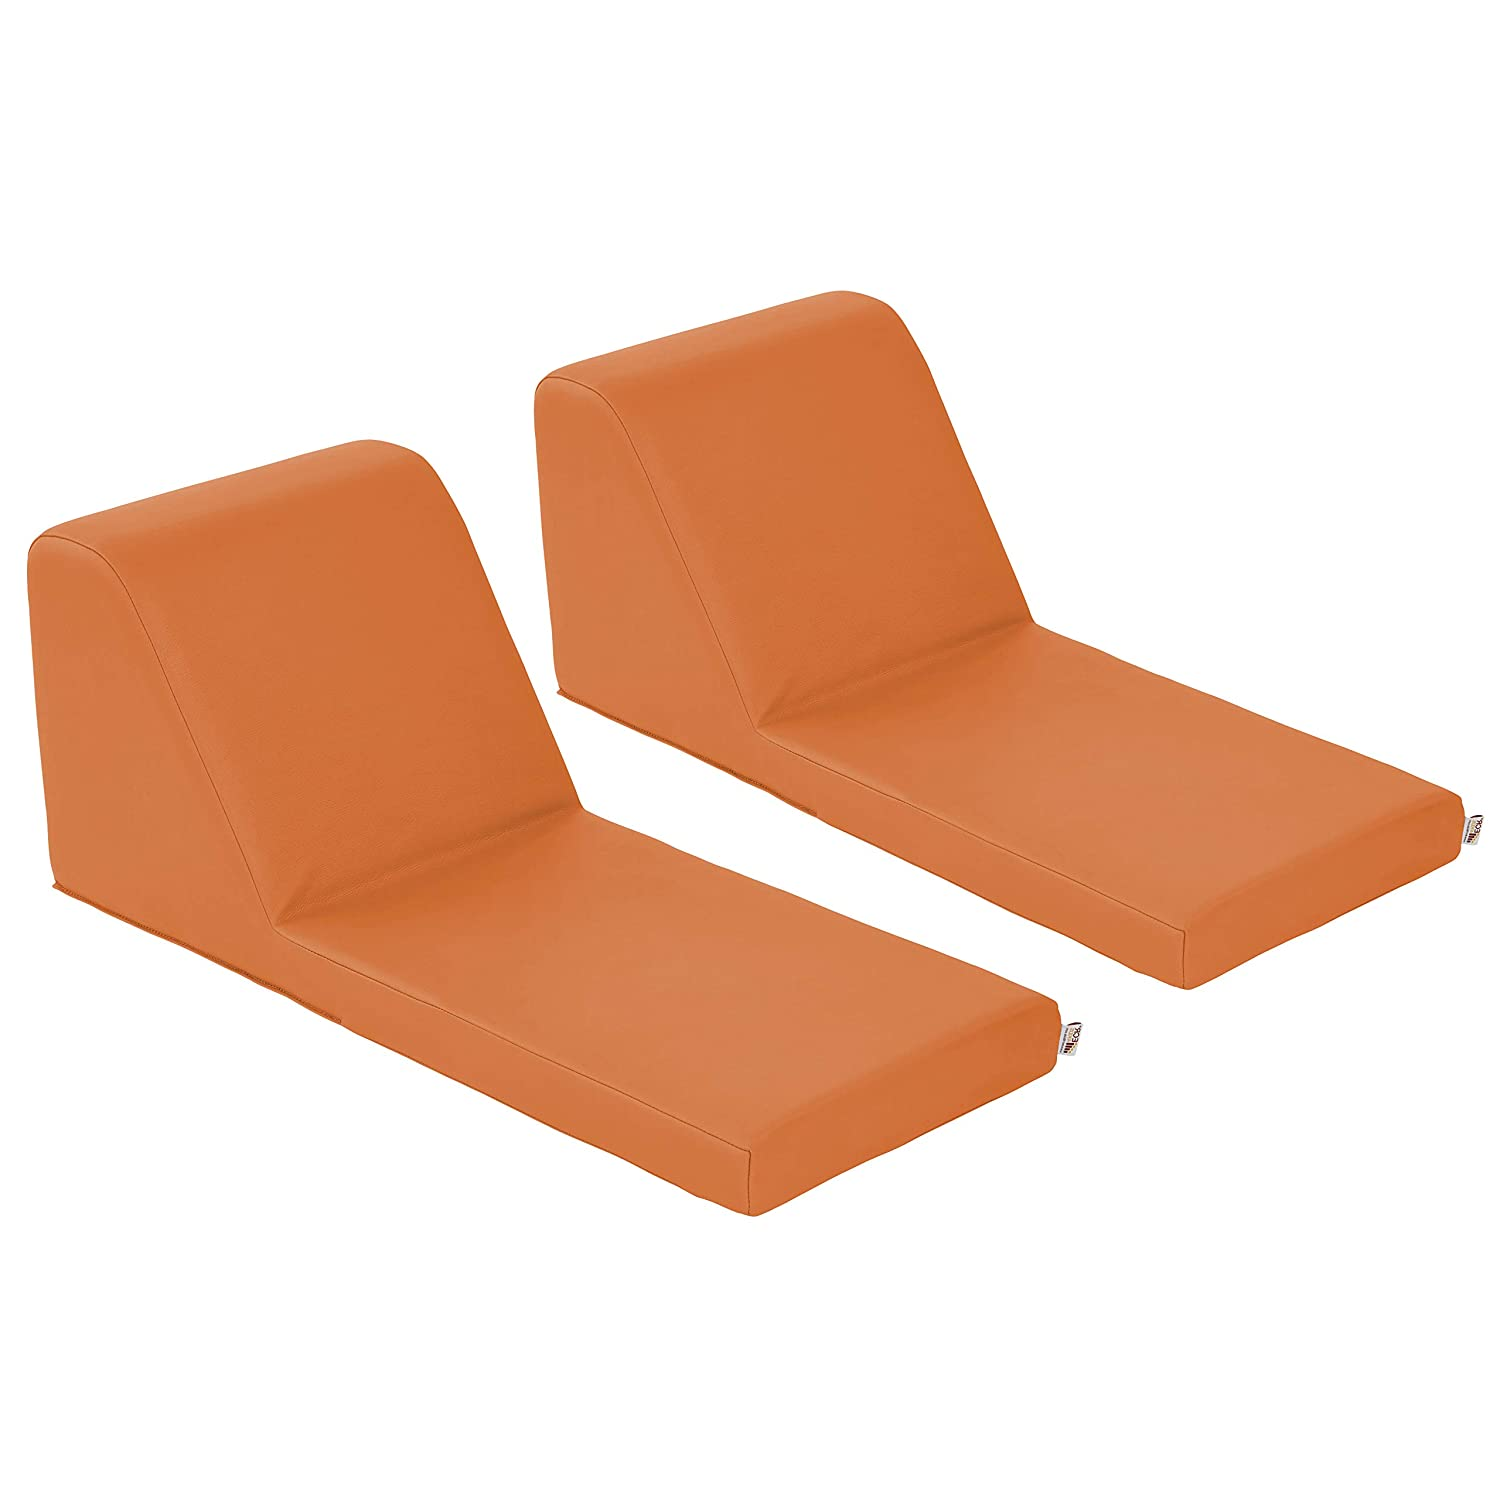 ECR4Kids SoftZone Chaise Lounge Soft Foam Lounger for Kids, Orange (2-Piece)